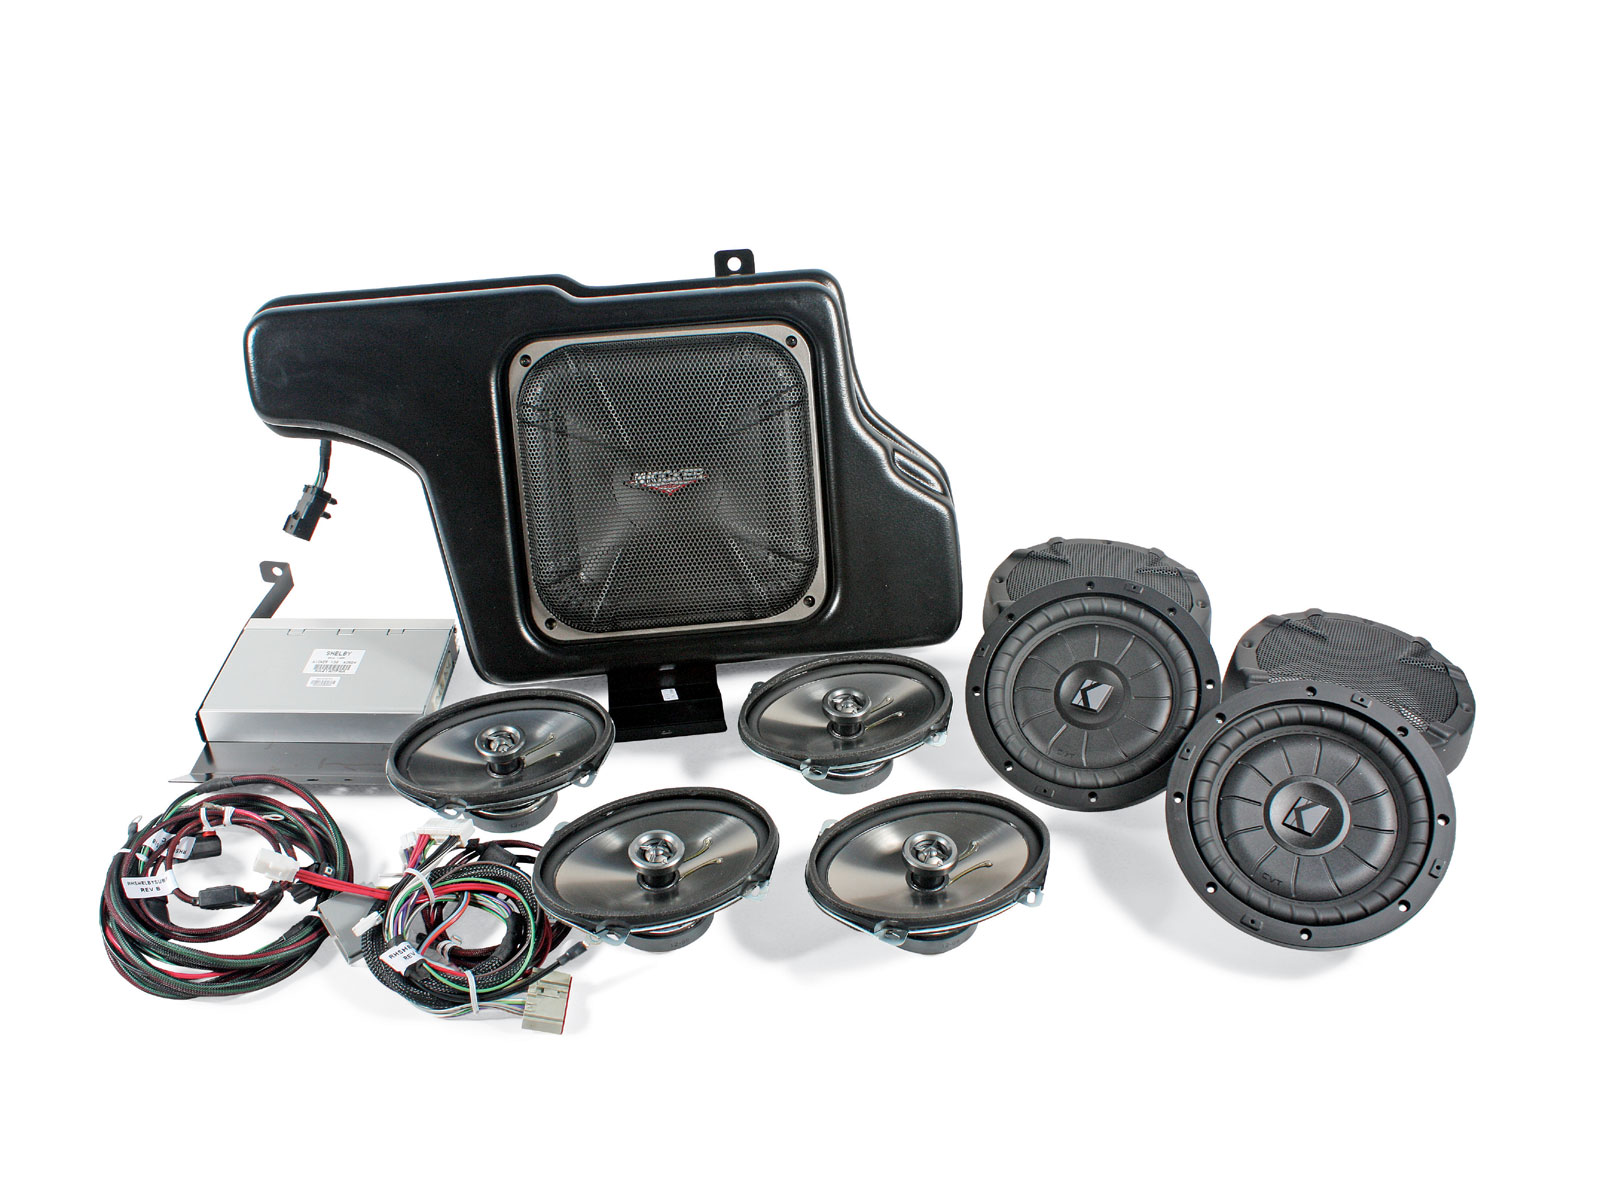 Install Shelby Kicker Sound System Shelby Kicker Sound System